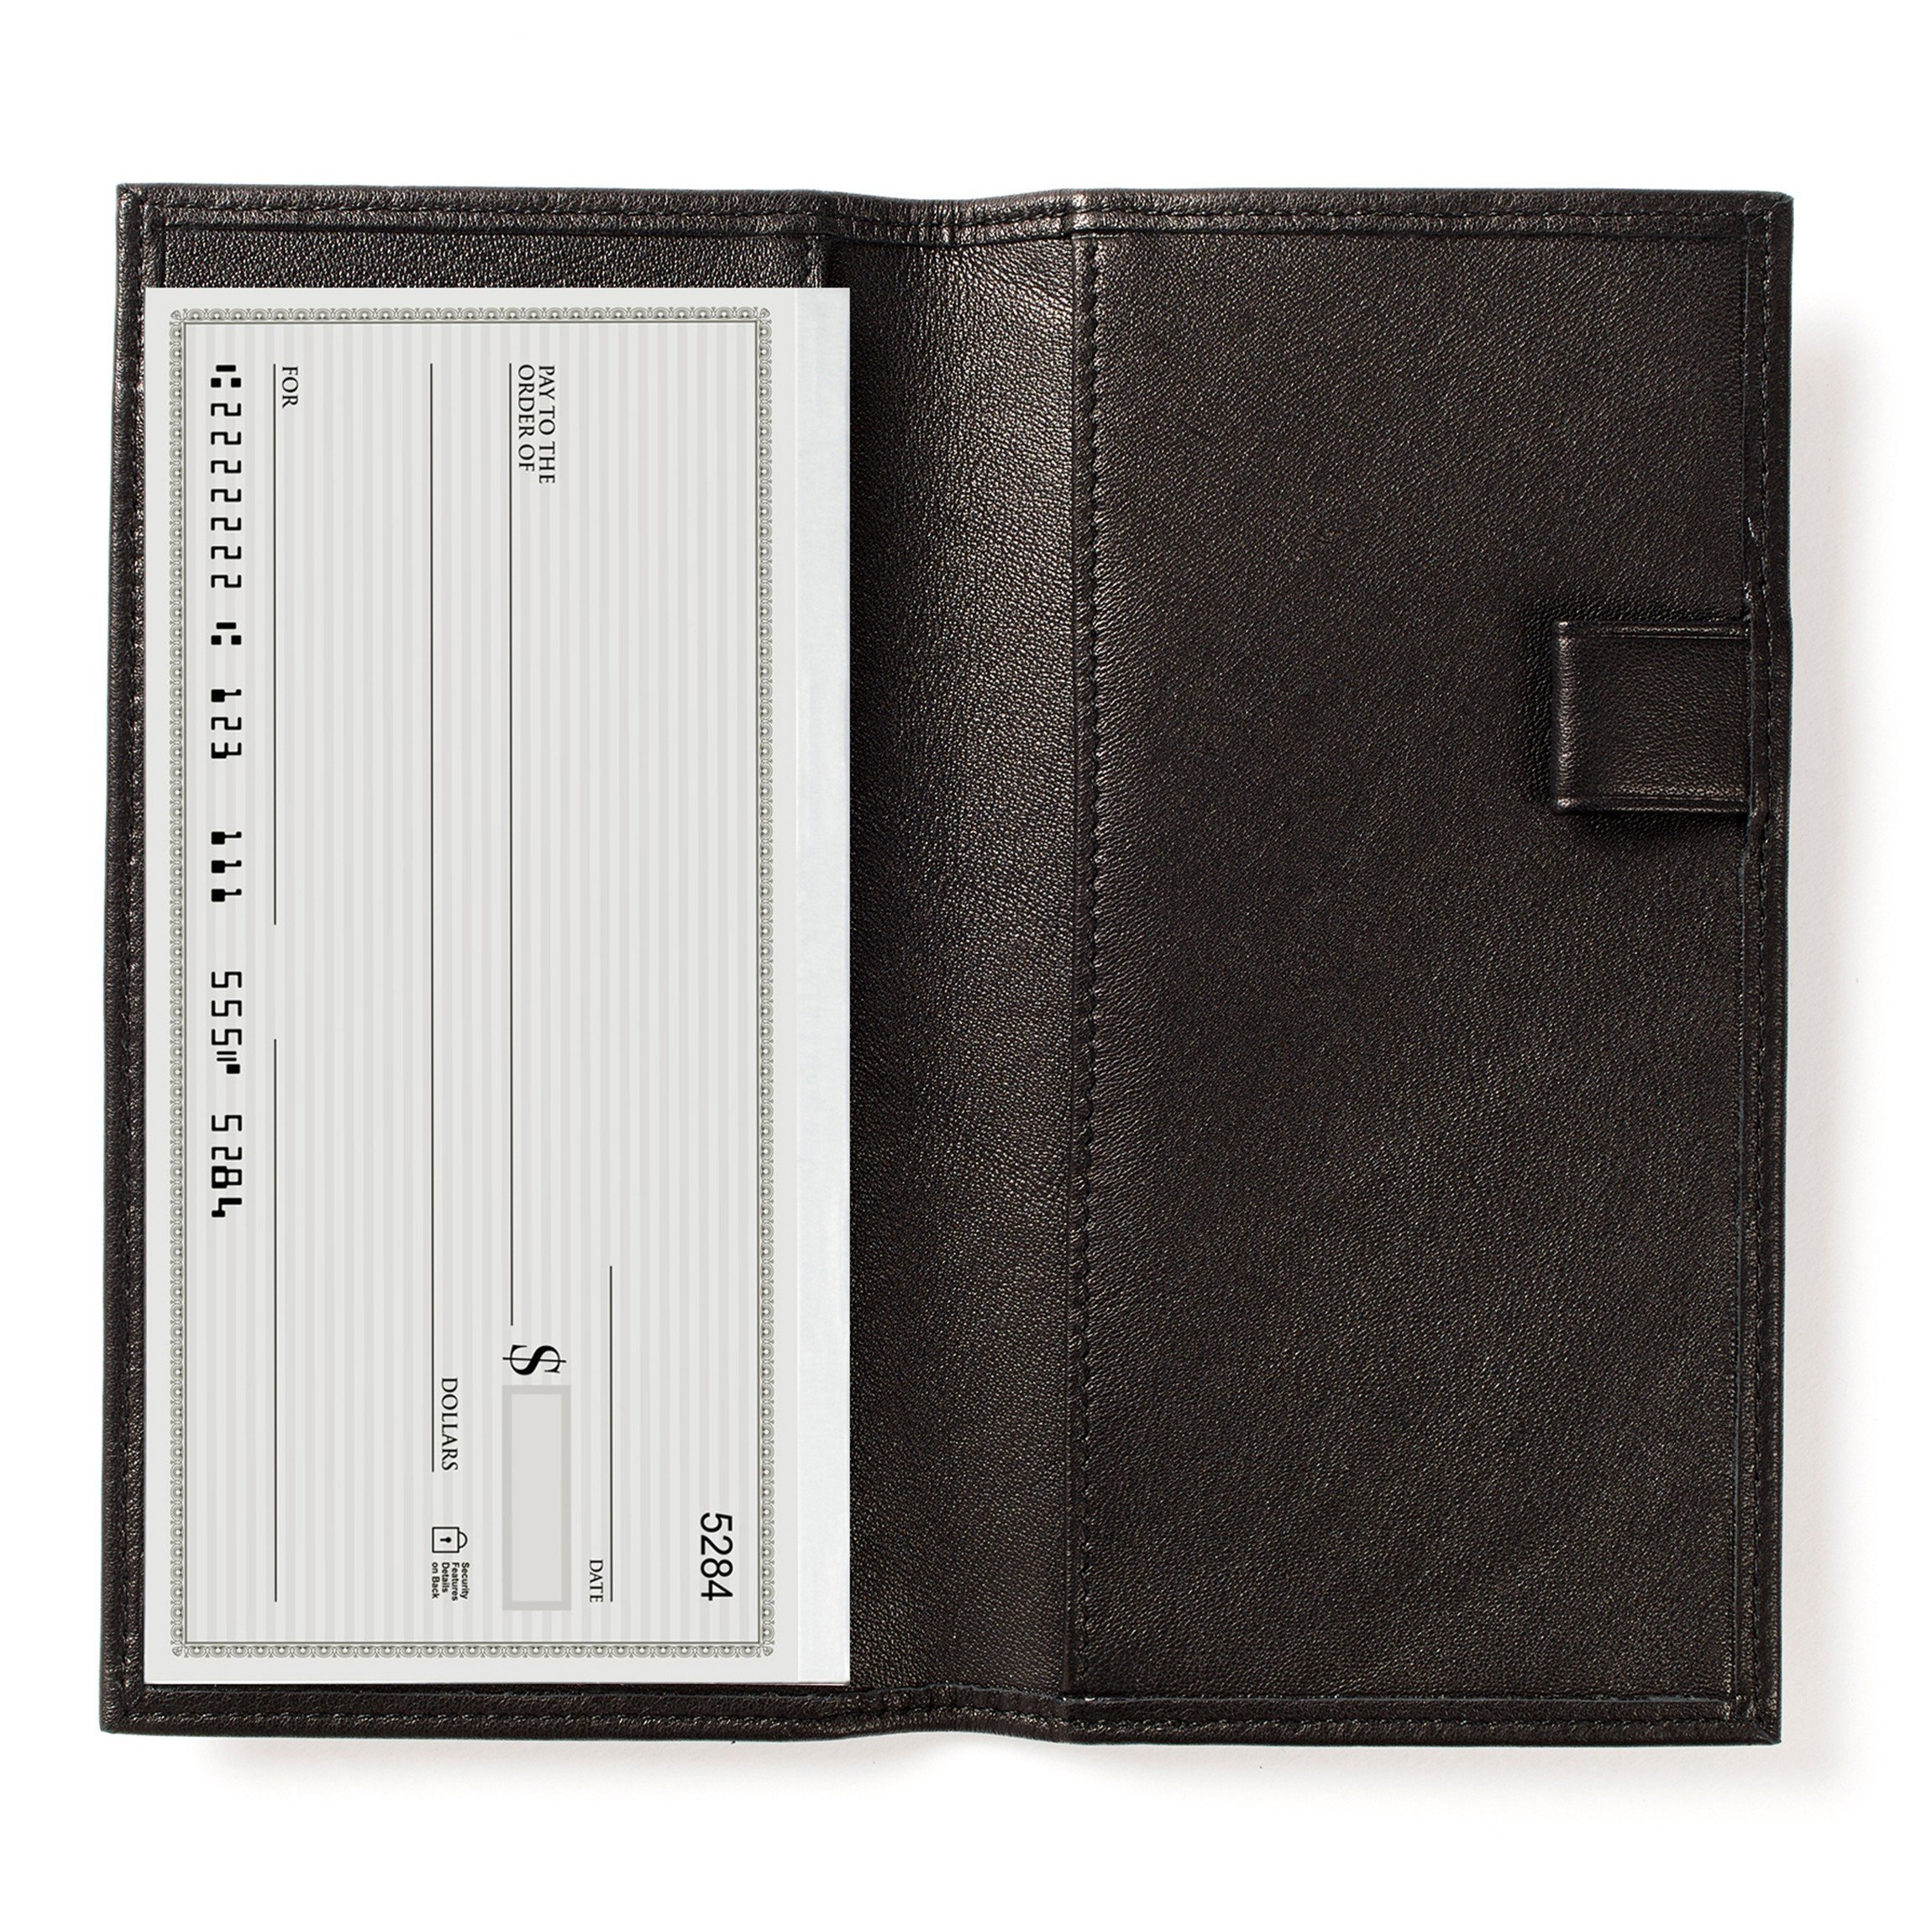 Deluxe Checkbook Cover with Divider - Full Grain Leather - Black Onyx (black)